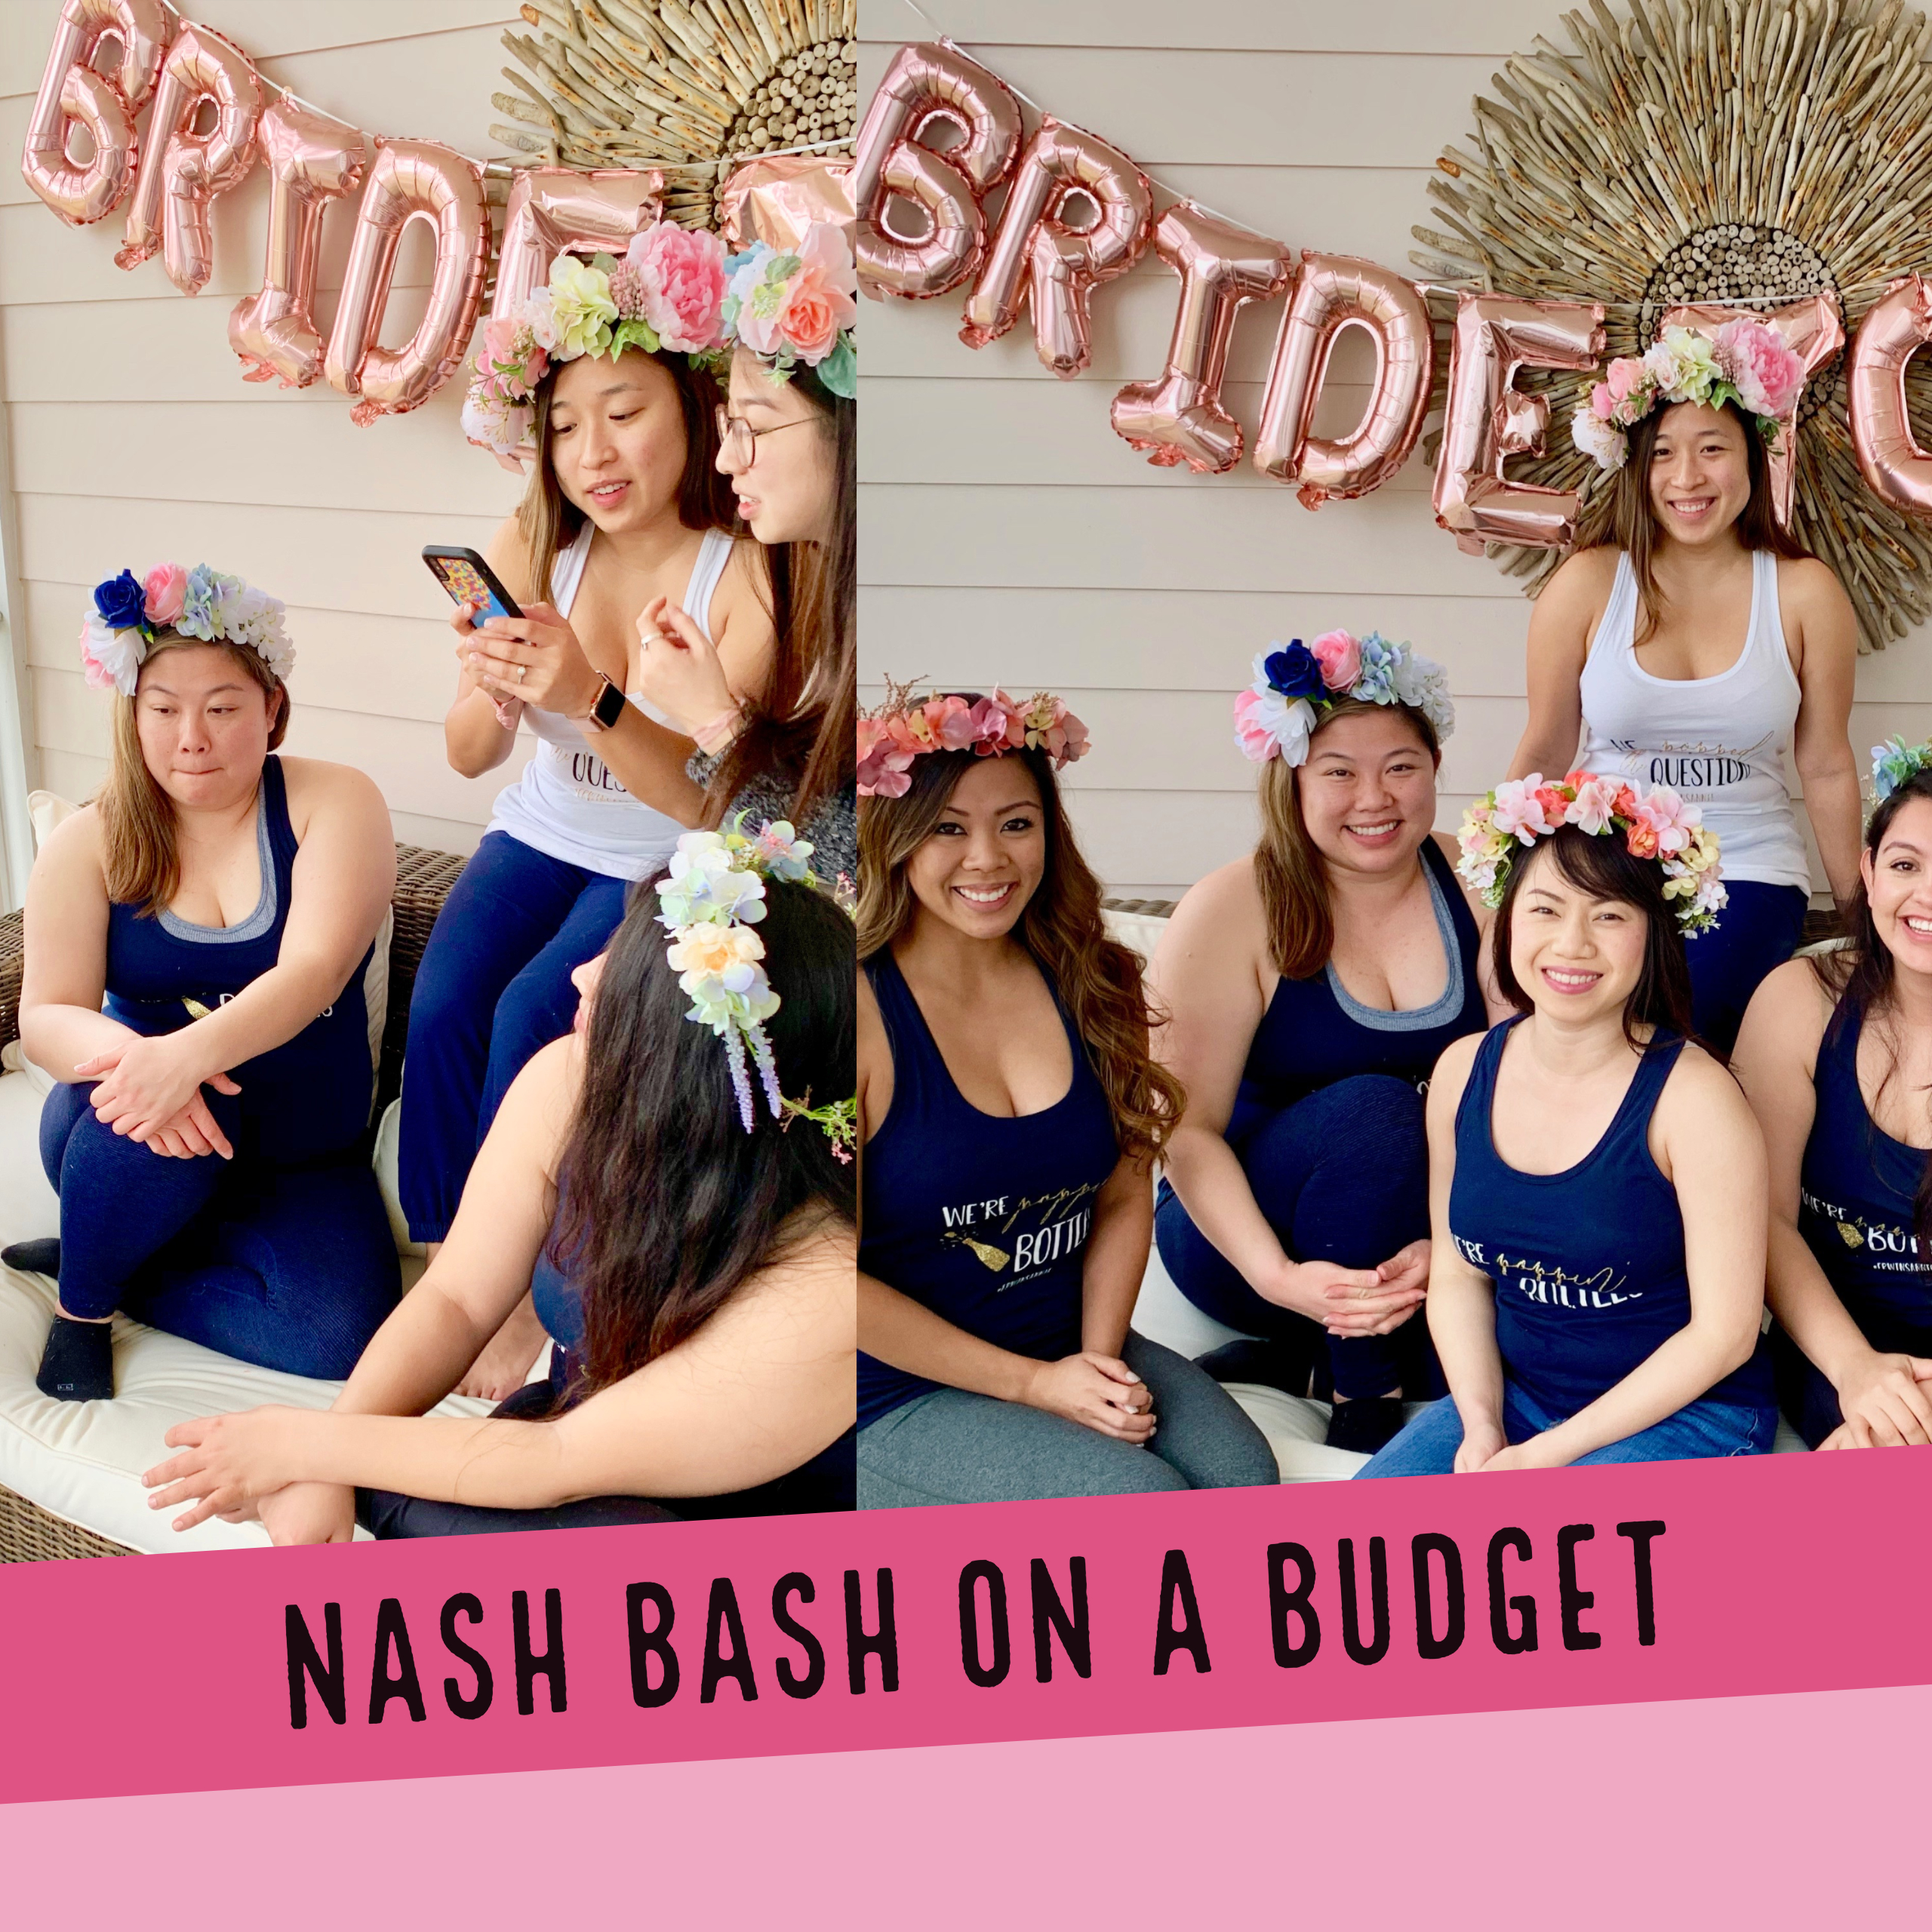 nash bash girls weekend on a budget